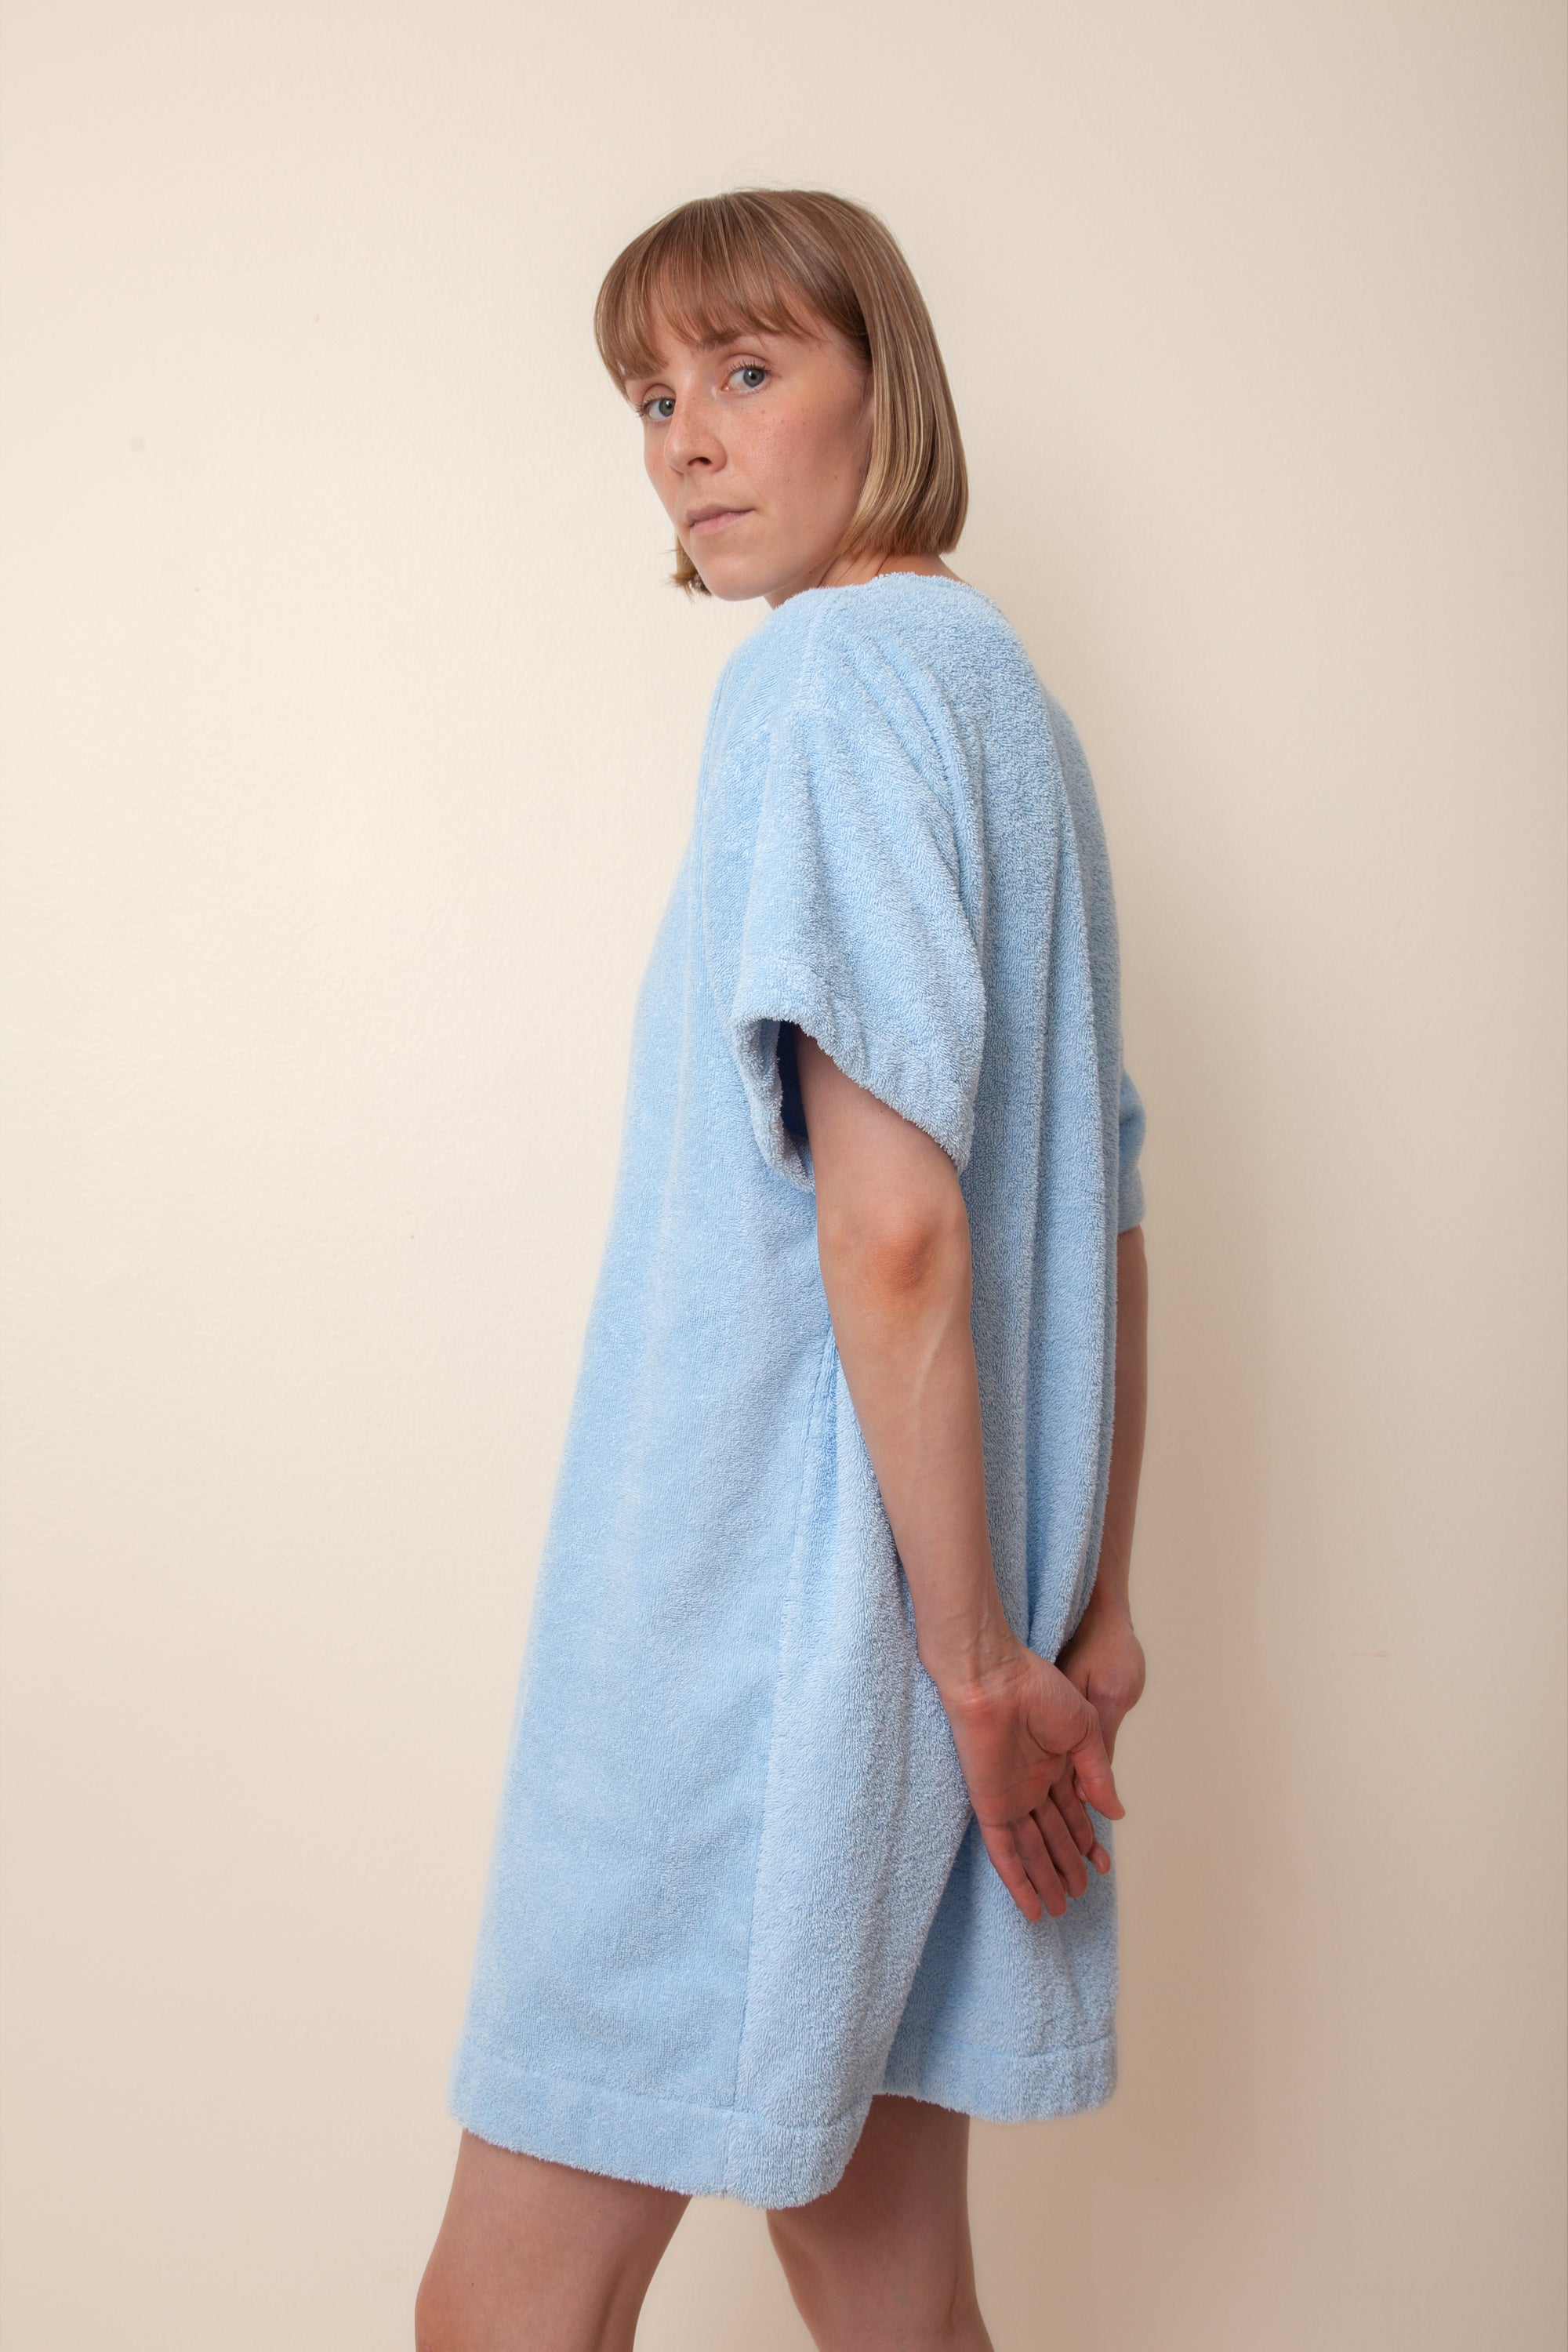 Unisex Overlong Terry Shirt in Cloudy Blue